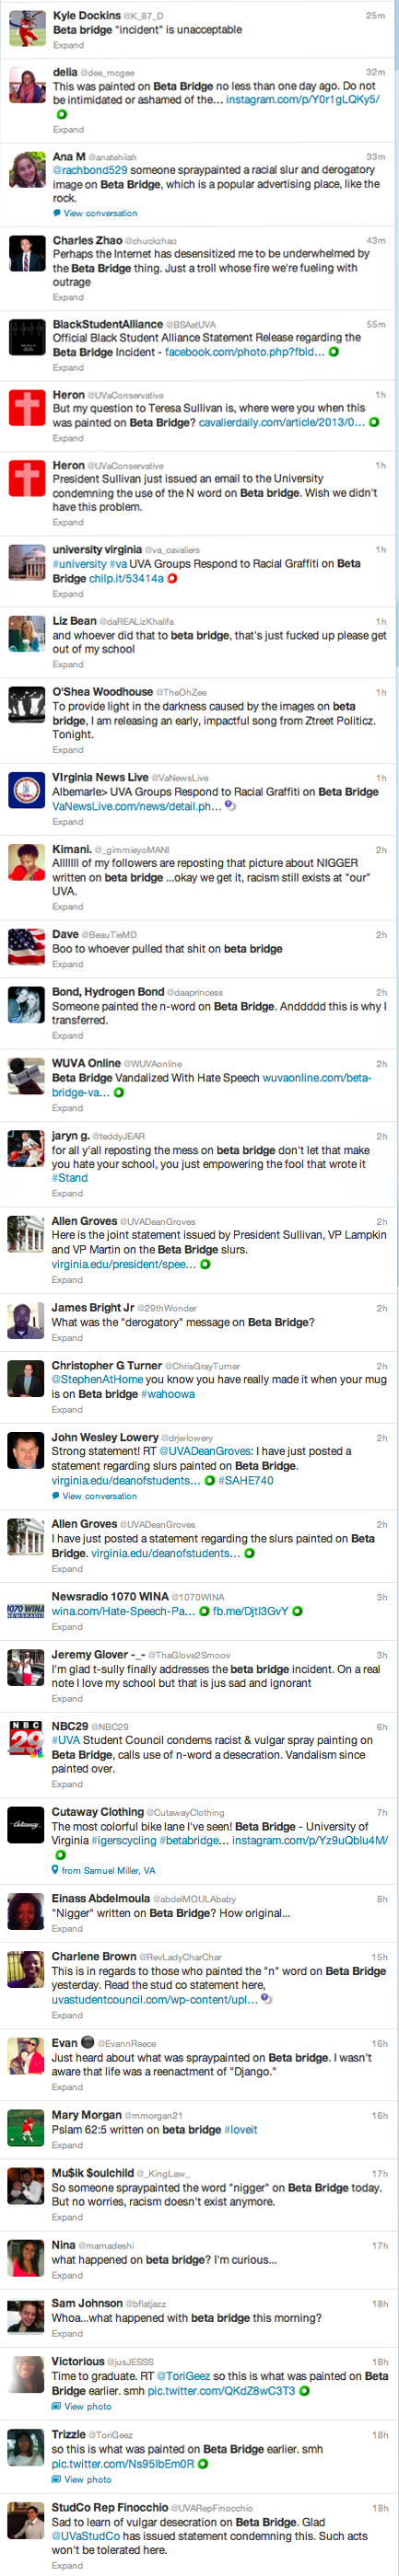 Just a small sampling of the tweets about this incident.